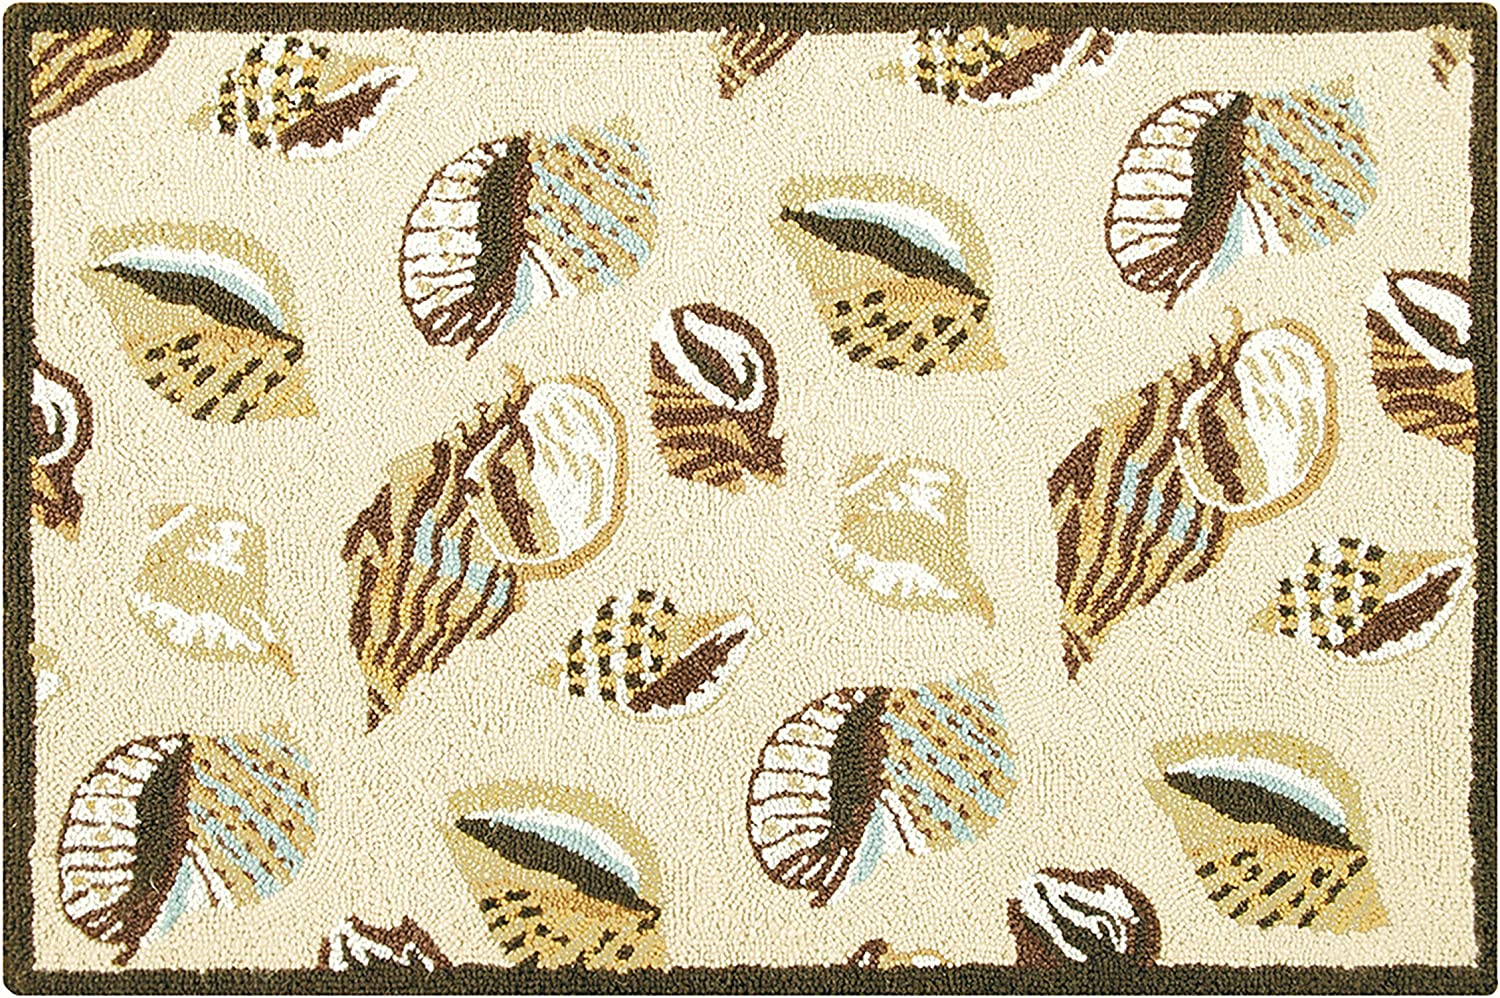 C&F Home Gold Coast Shells Coastal Tropical Beach Yellow Brown Tan Wool Handcrafted Premium Hooked Indoor Area Rug 2x3 Hooked Rug Beige